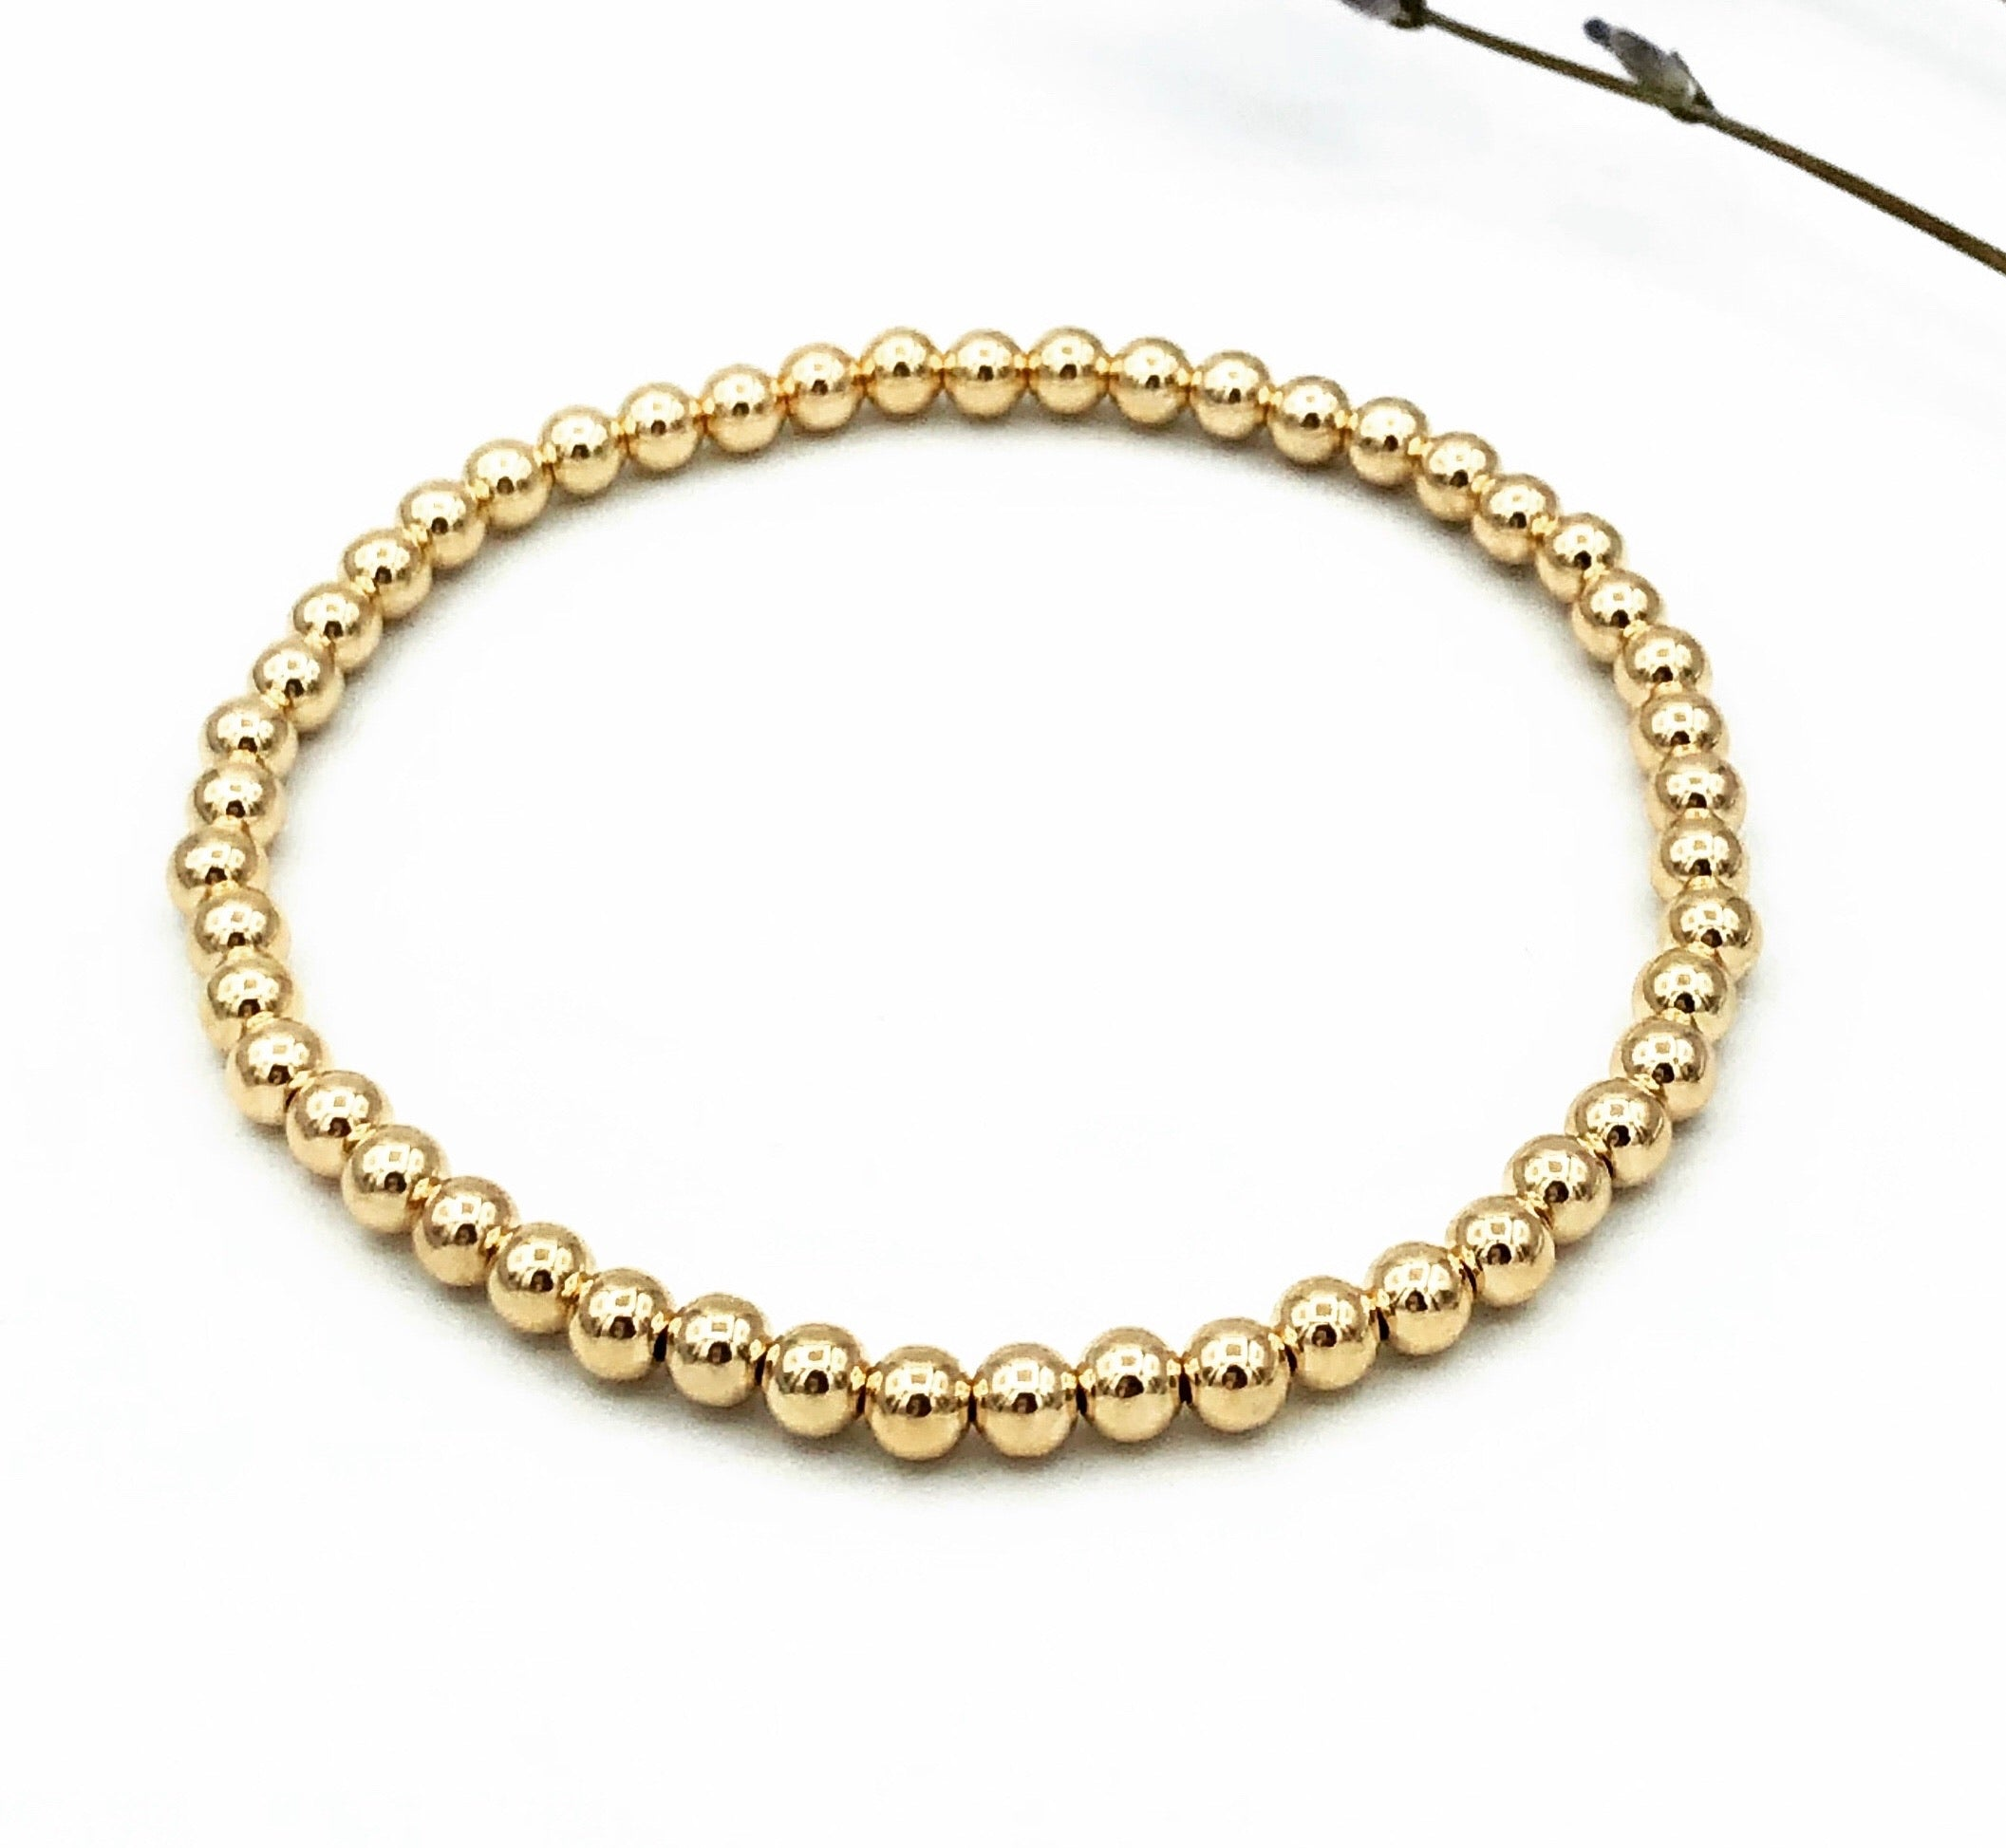 Abigail Gold Stretchable Bracelet